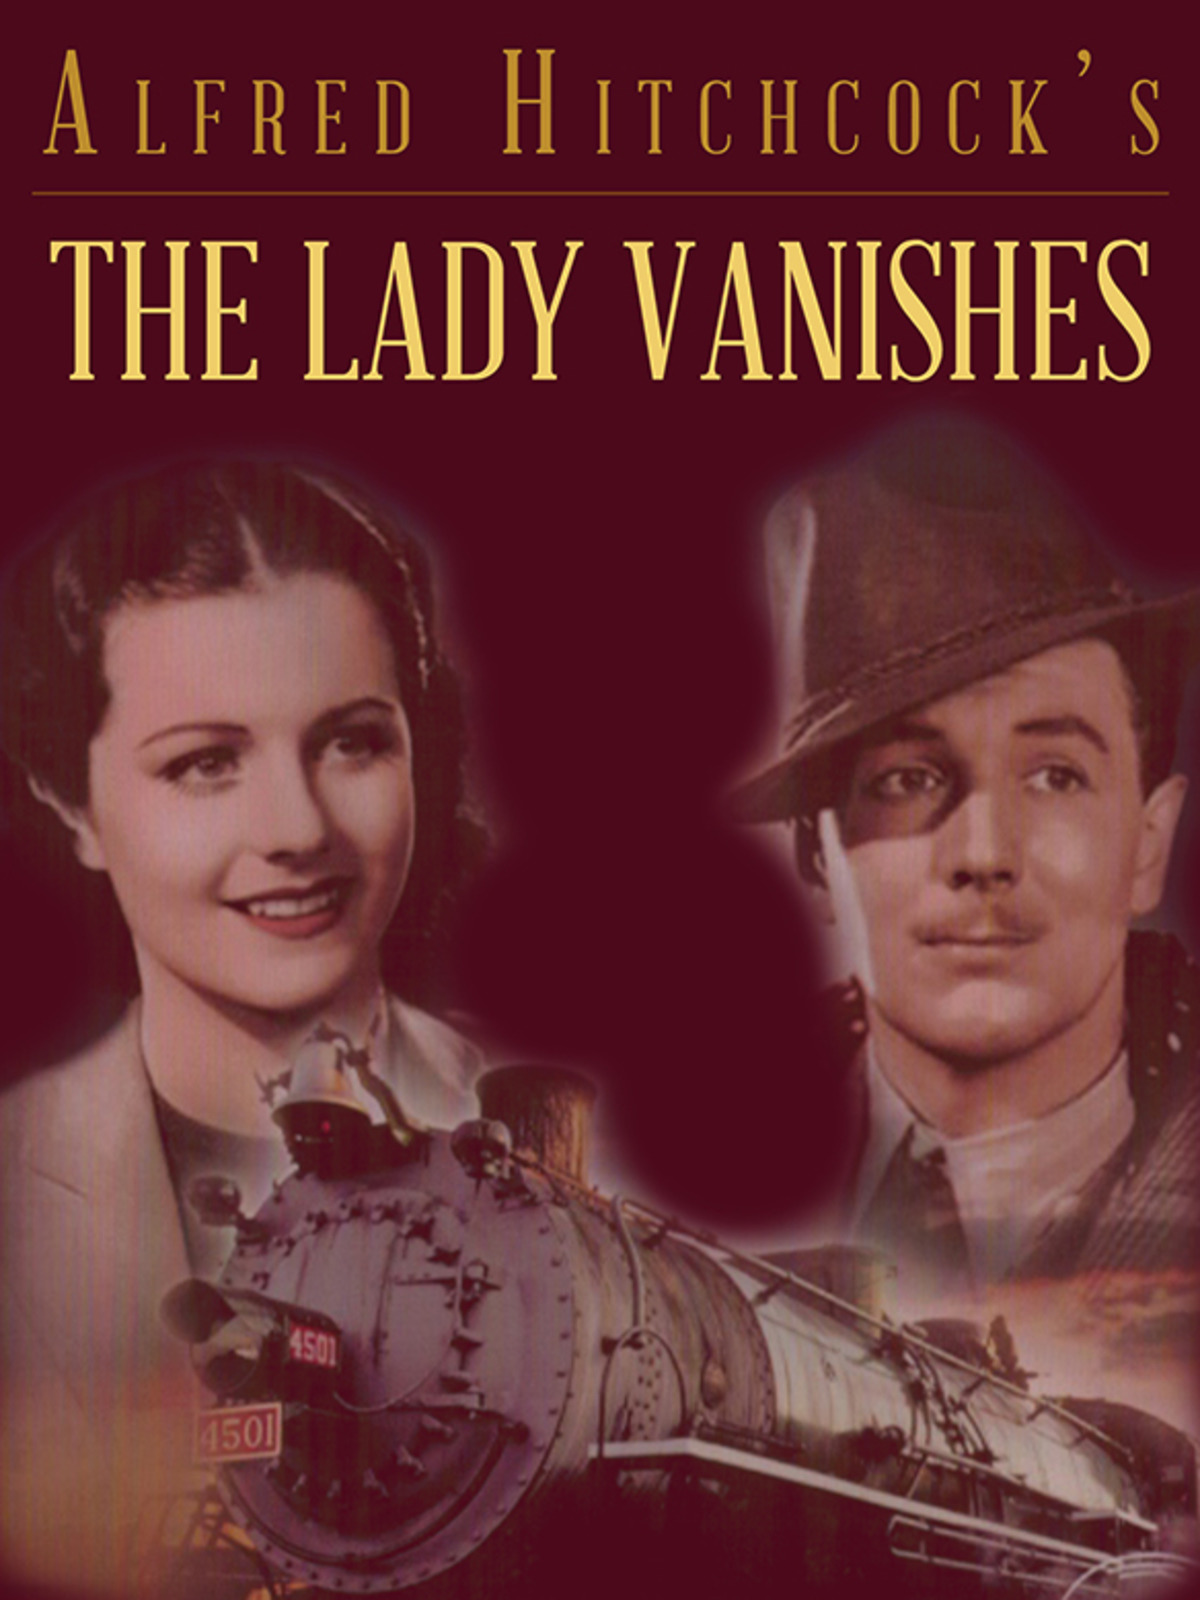 The Lady Vanishes (1938, dir, Alfred Hitchcock) bootleg DVD artwork